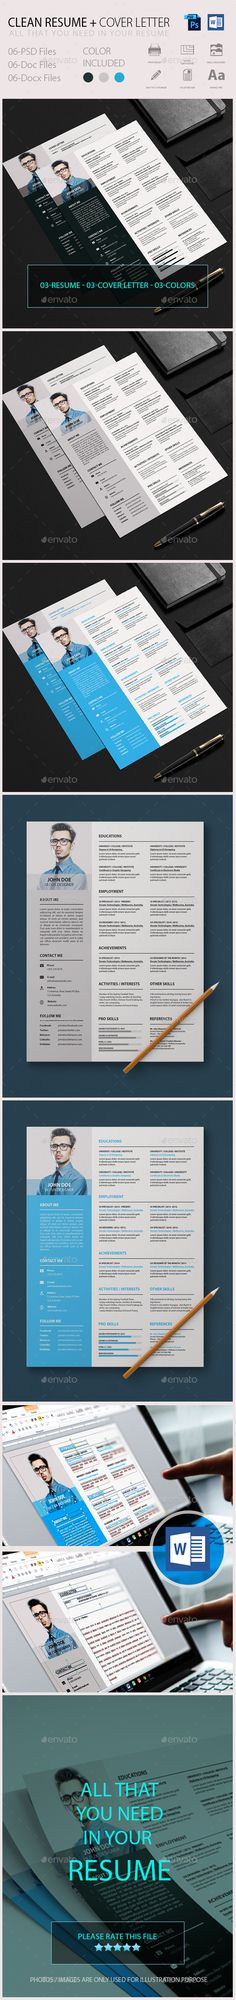 What Is A Resume Cv Excel Resume  Resumes Stationery Download Here Httpsgraphicriver  Example Job Resume with Teaching Resume Example Excel Resume Resume Html Template Excel